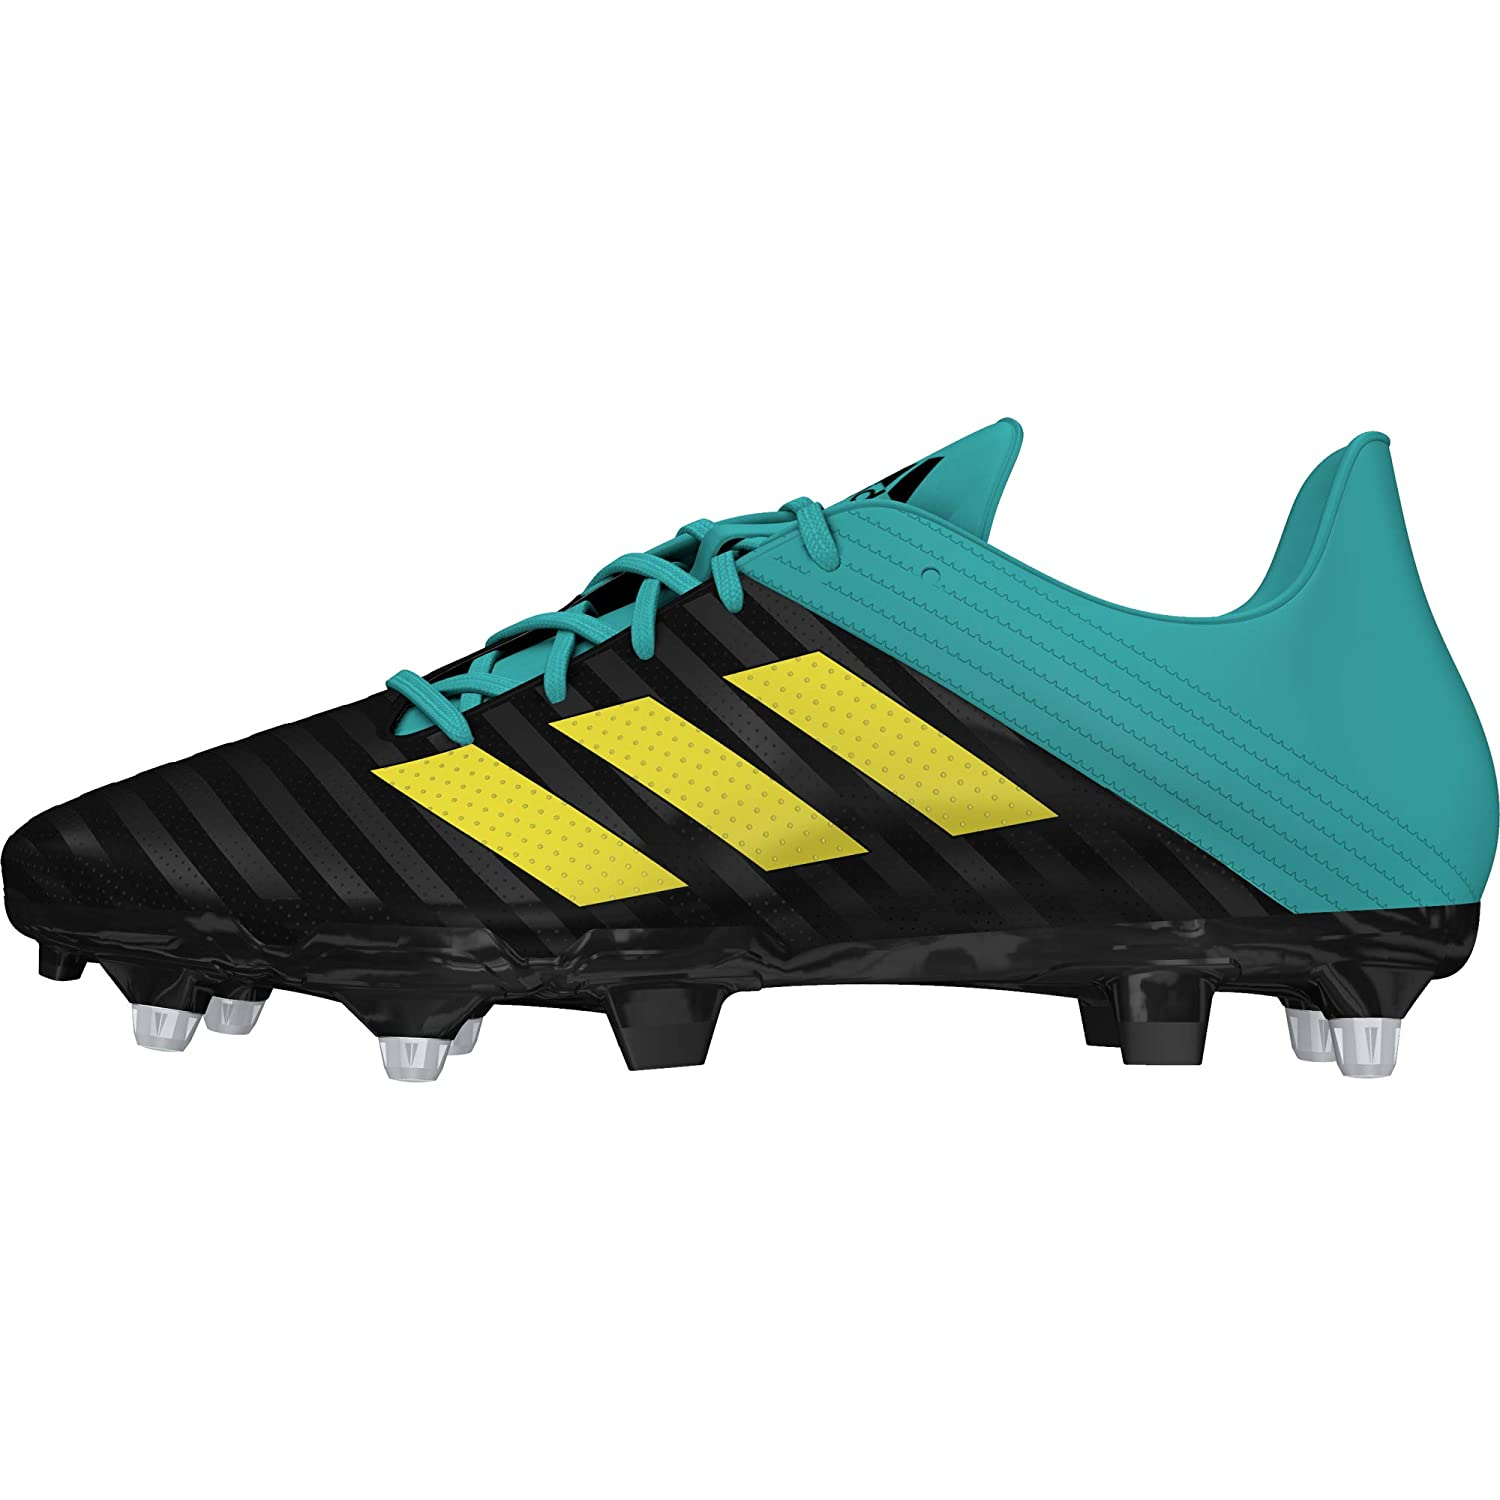 a47273687bad Amazon.com  adidas Malice Adult s Rugby Boots SG  Clothing